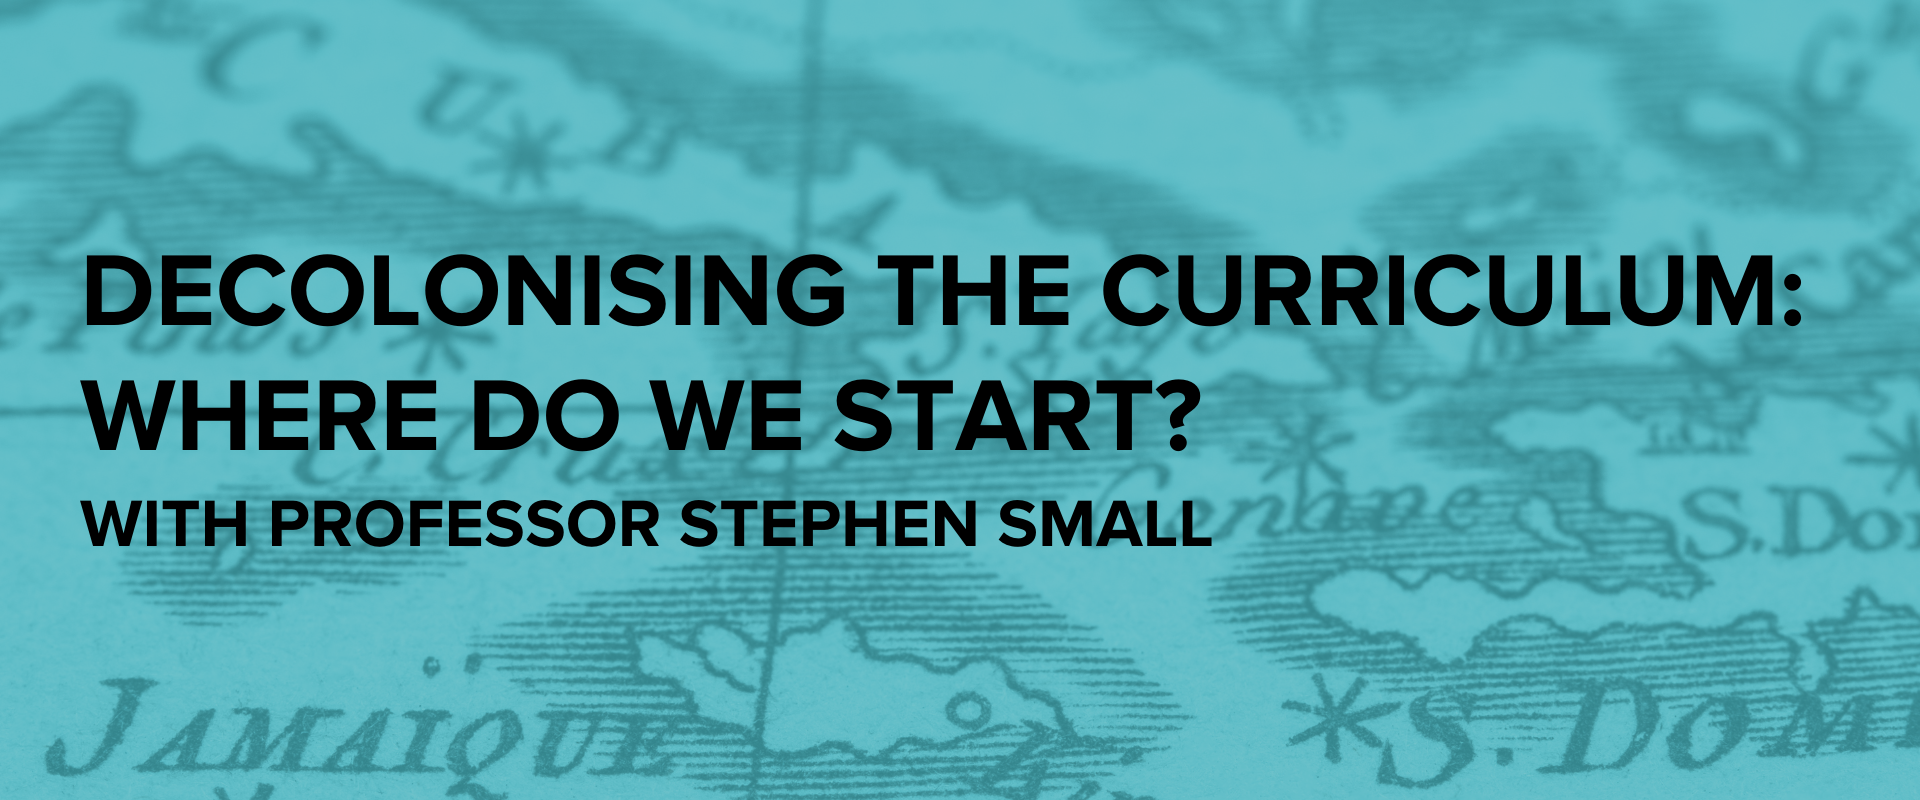 Decolonising the Curriculum: Where Do We Start? — Page Banner